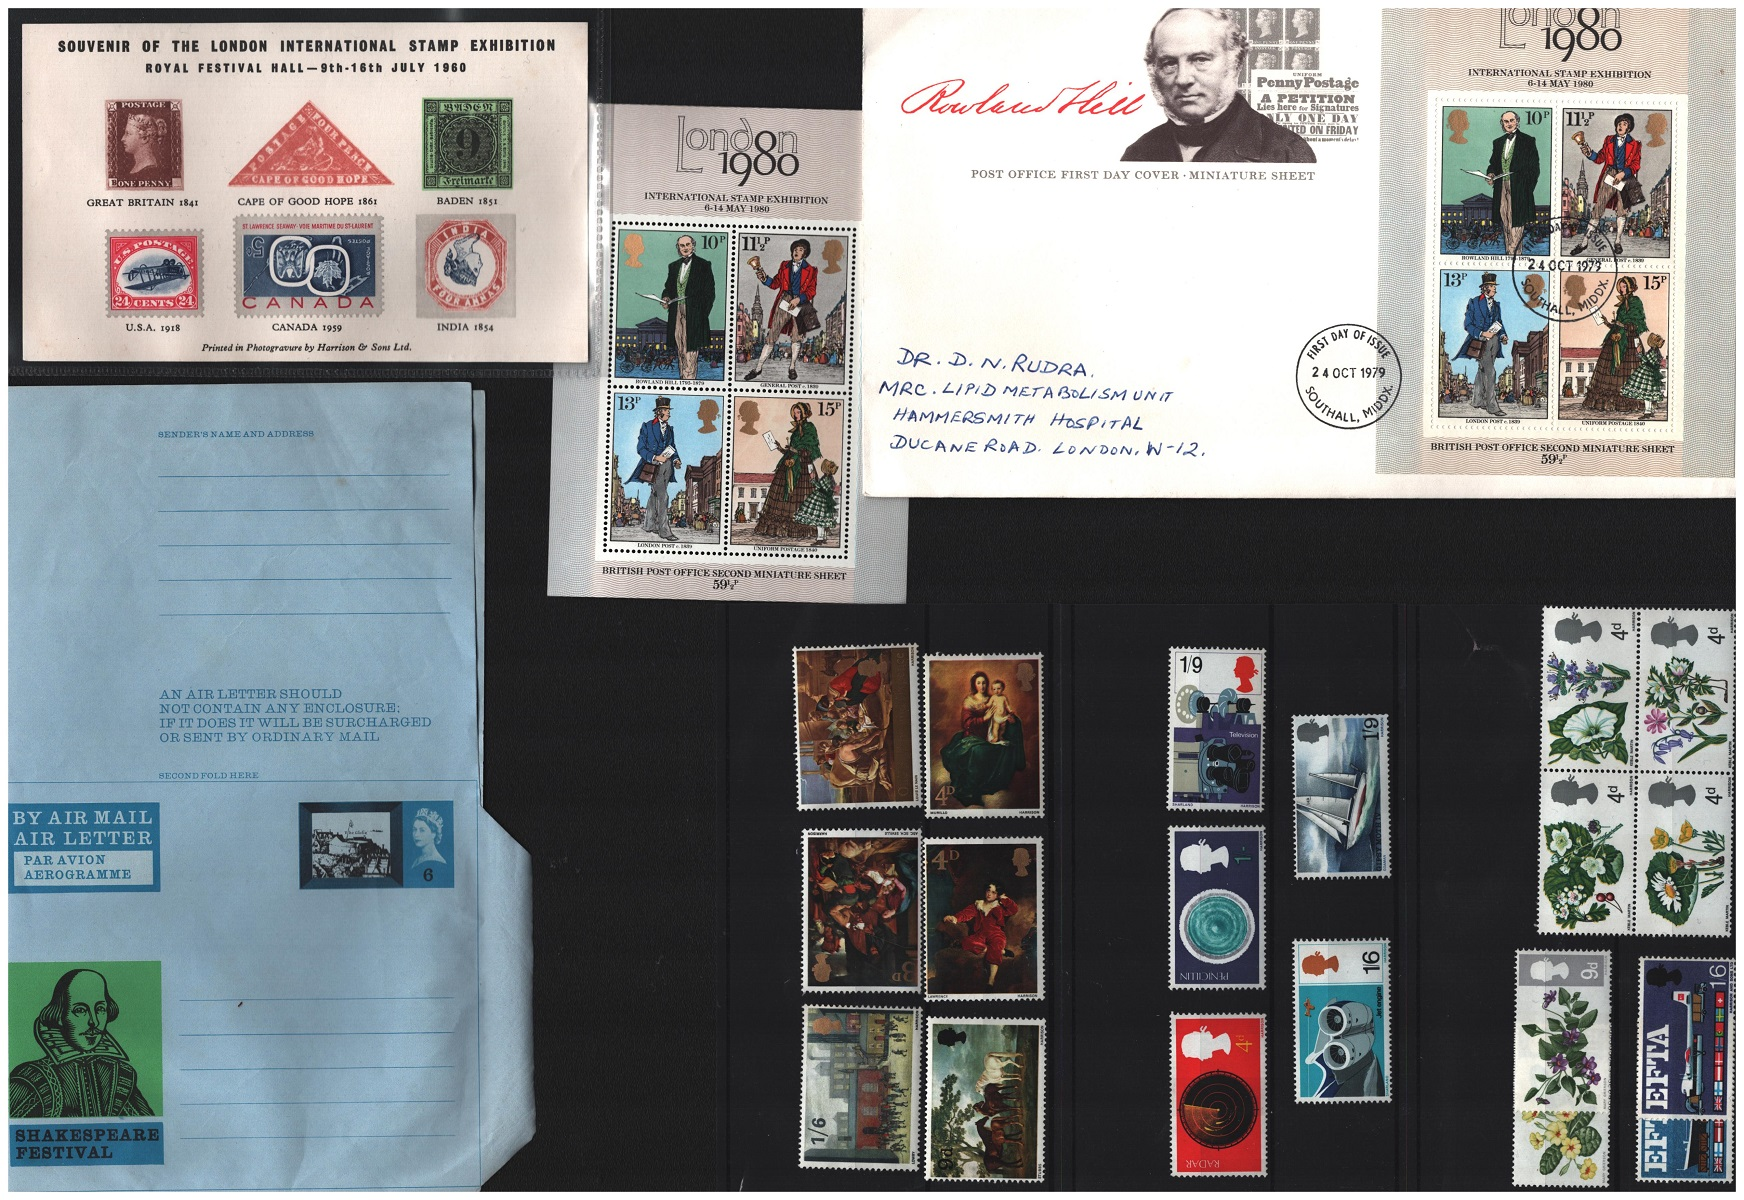 GB collection. Includes airletter and pre-printed envelope. Booklet 60th birthday 1986 QEII, - Image 2 of 2